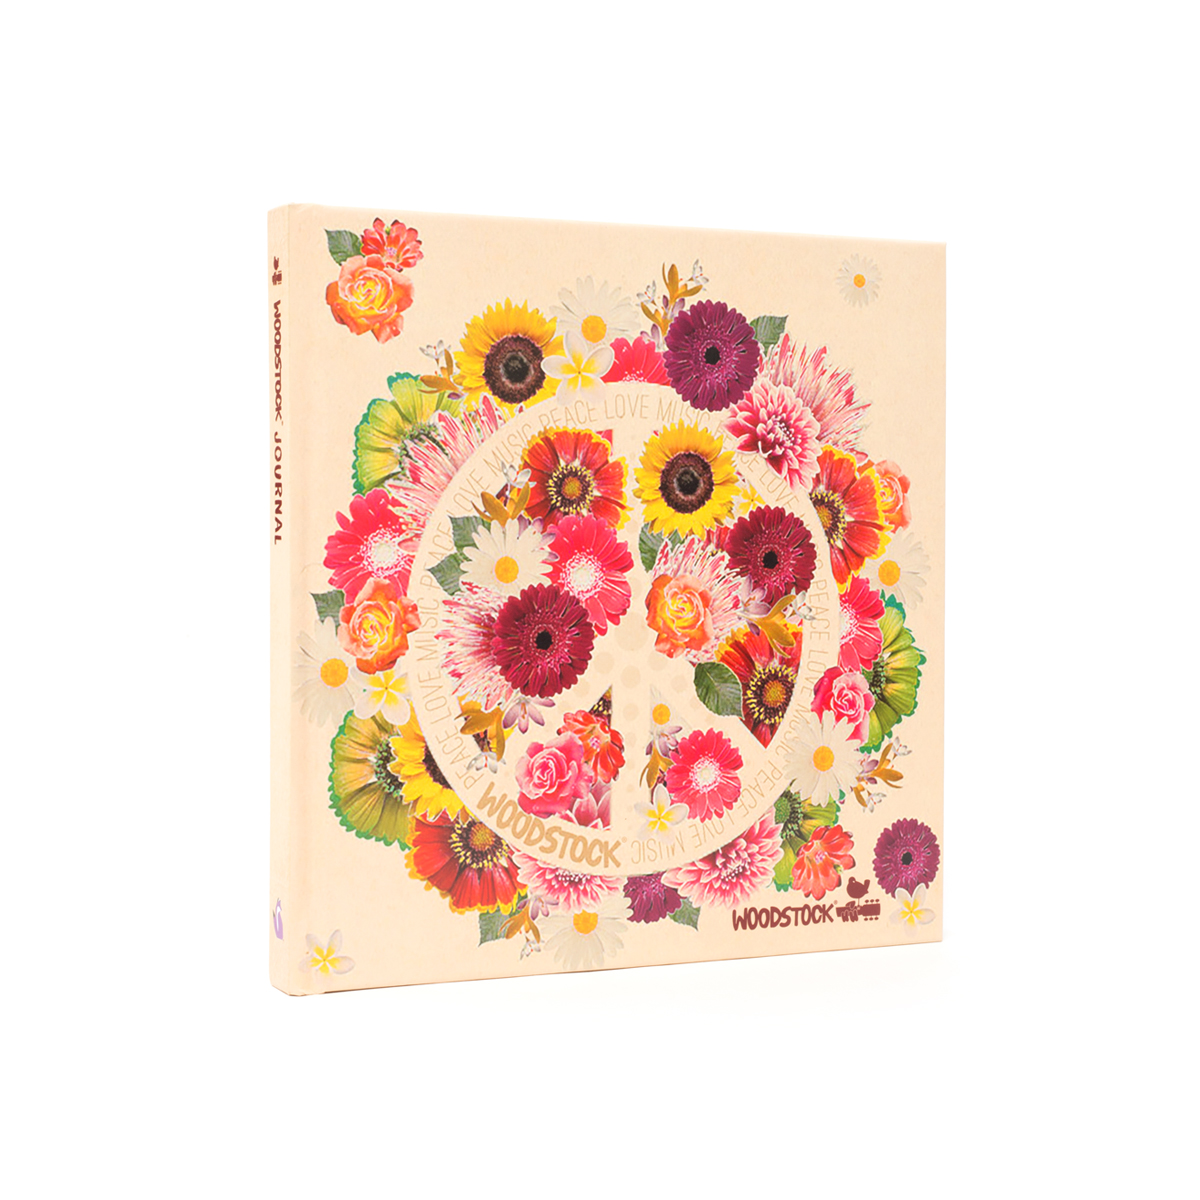 Woodstock Flowers Notebook